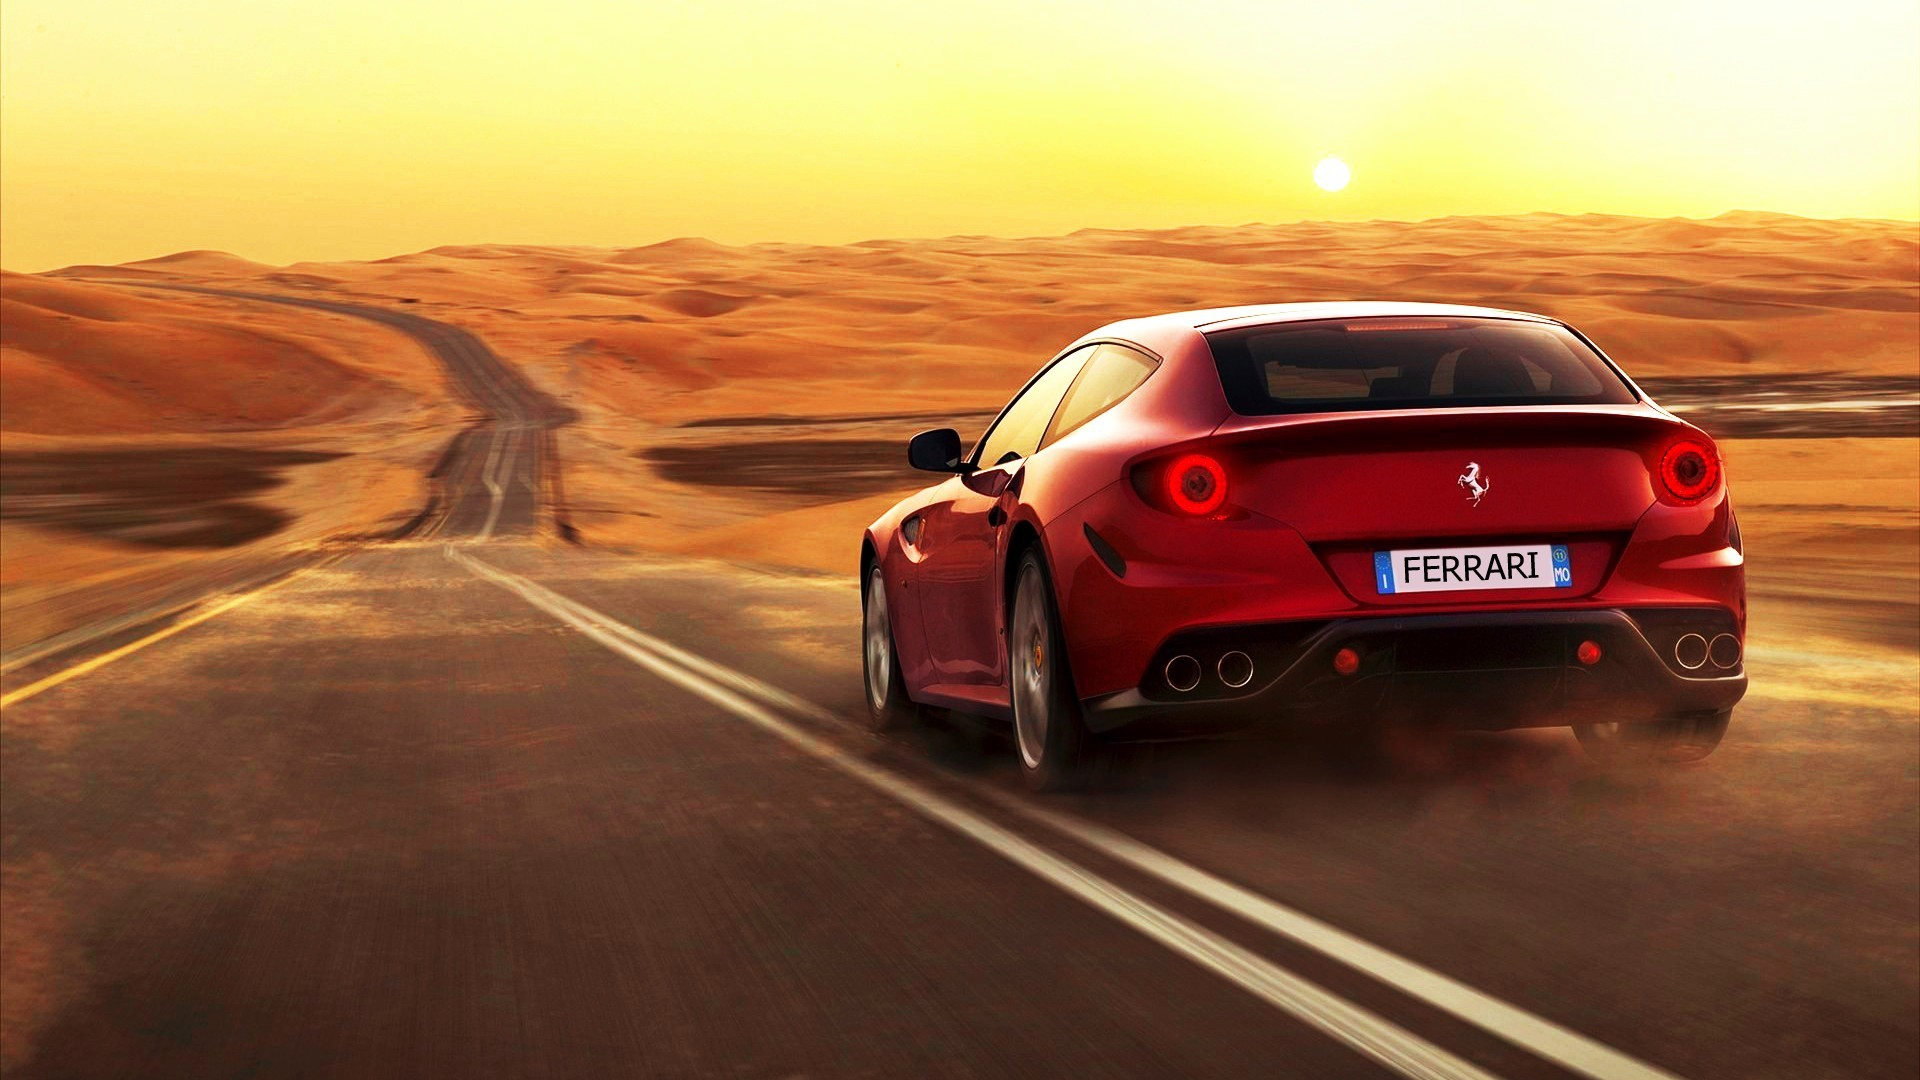 best 10 ferrari wallpapers hd 1080p